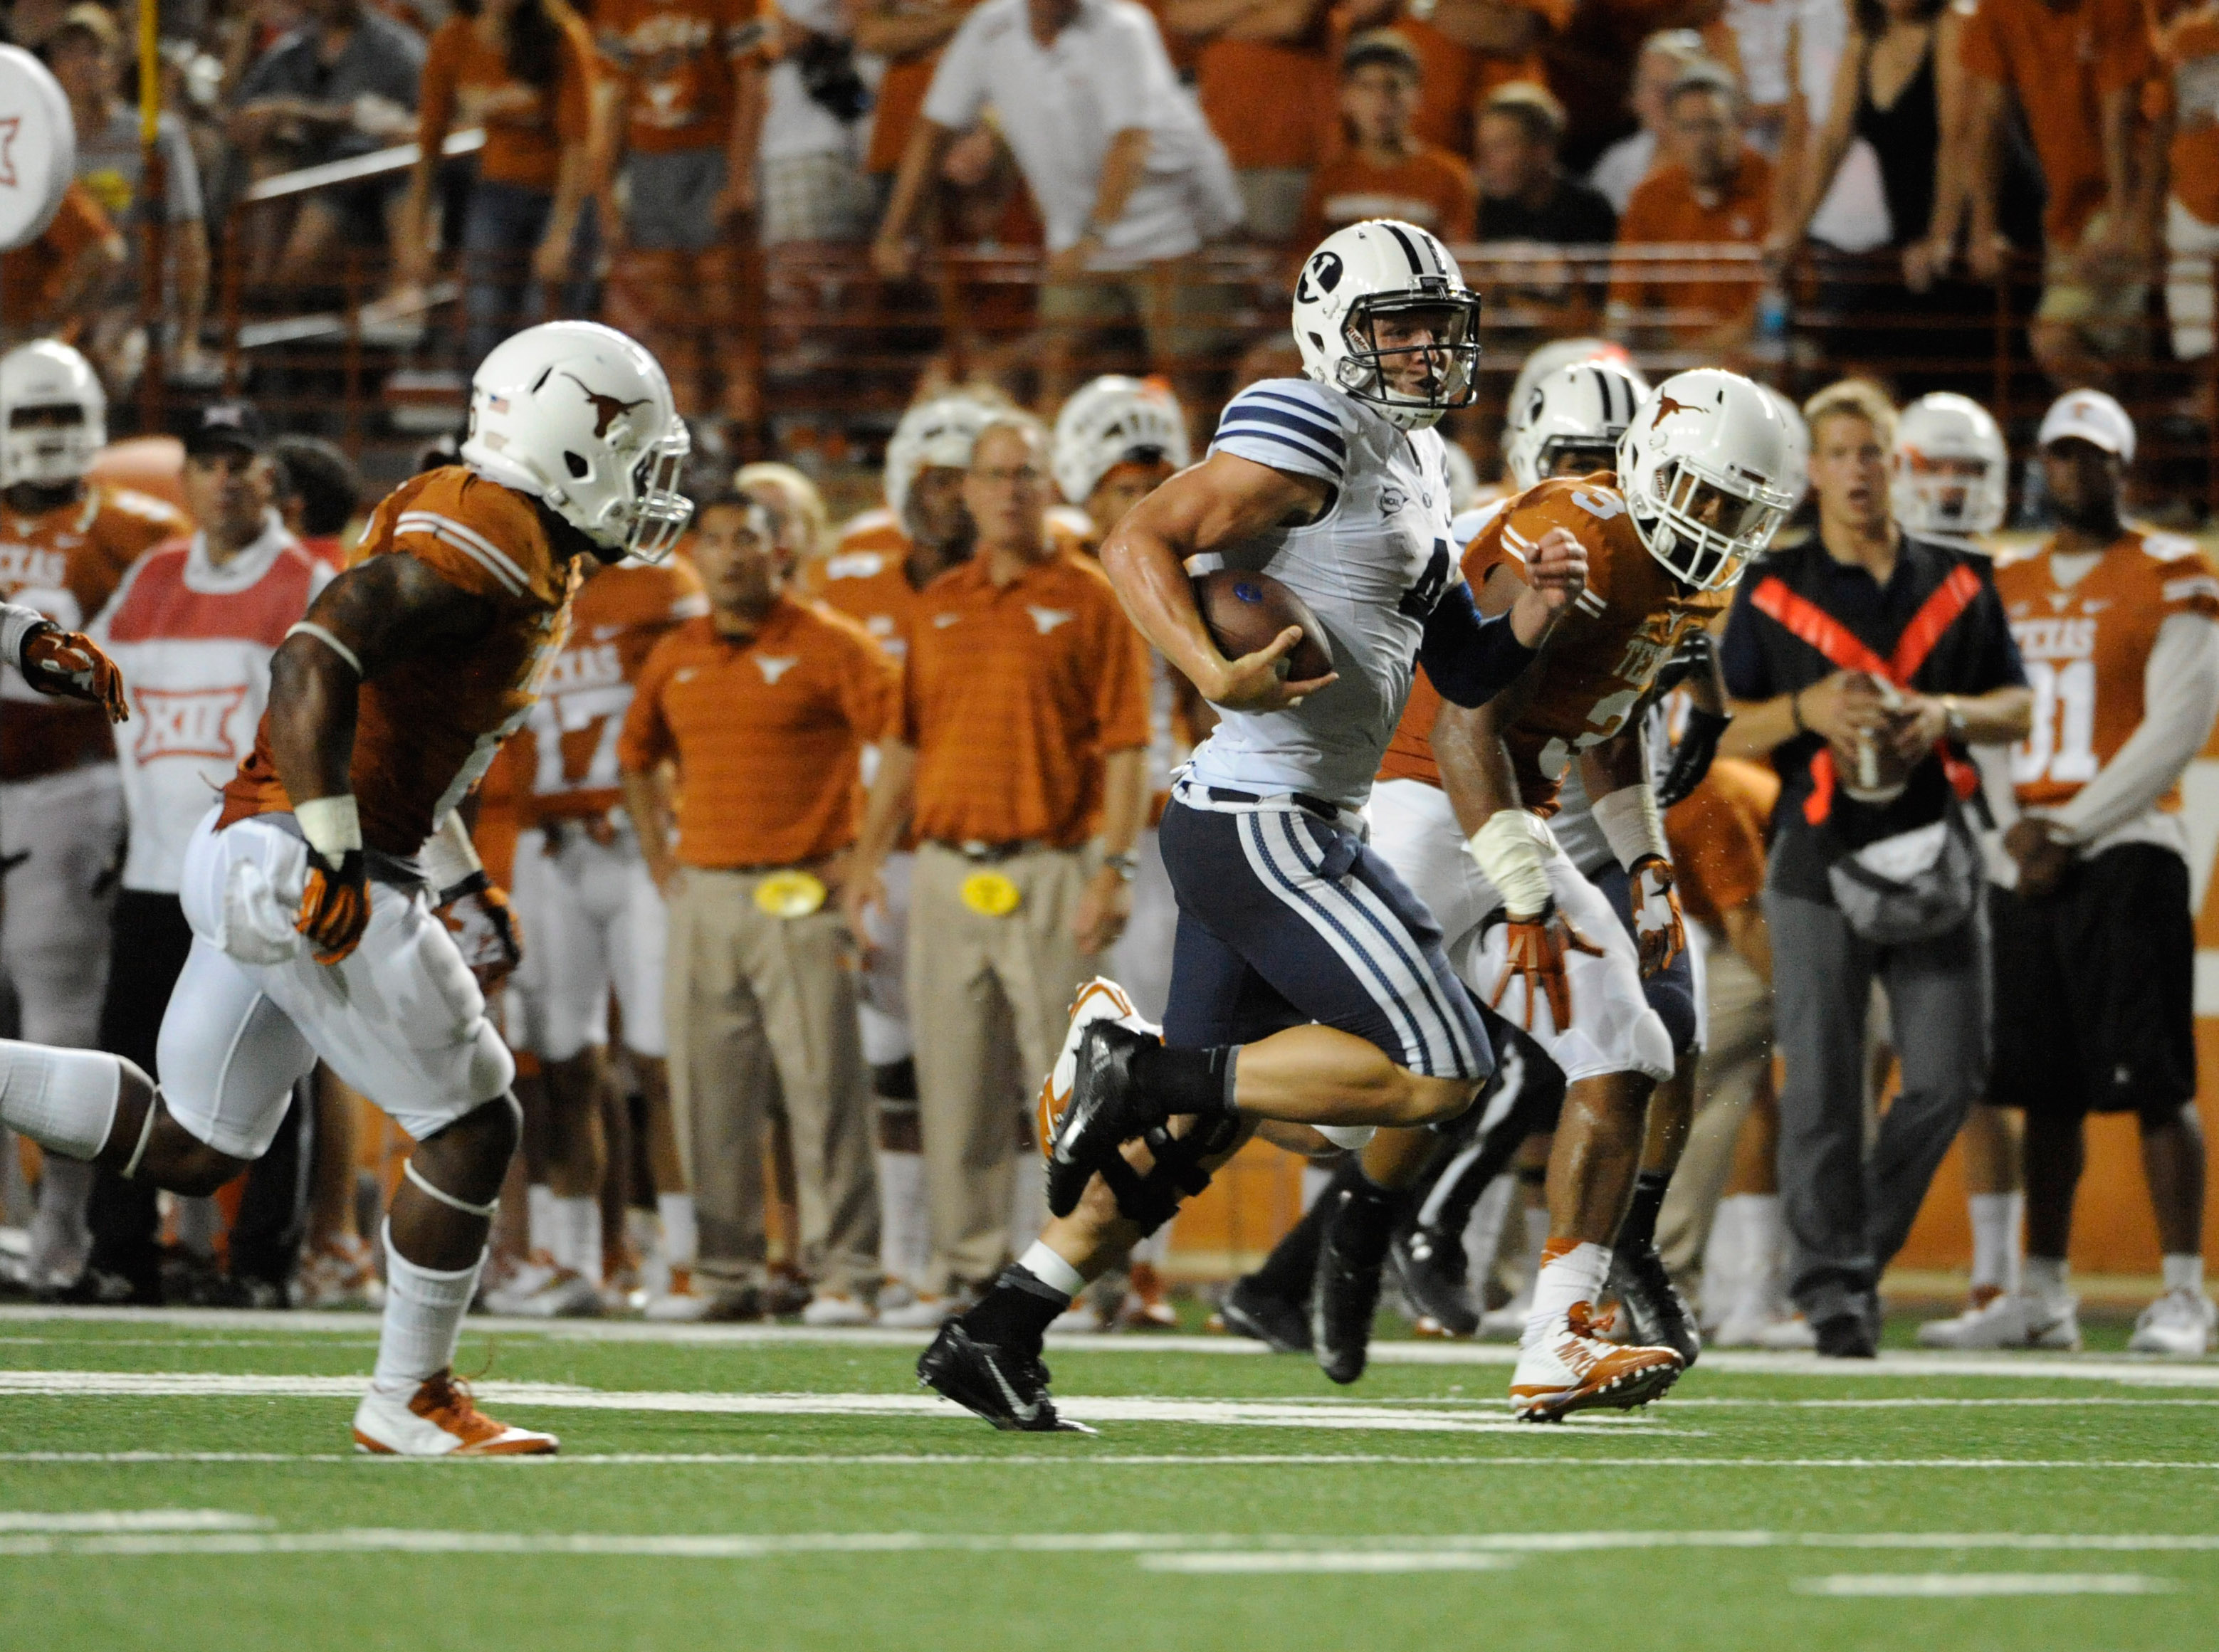 Moooove out of the way, Texas. Taysom Hill is on the loose again...